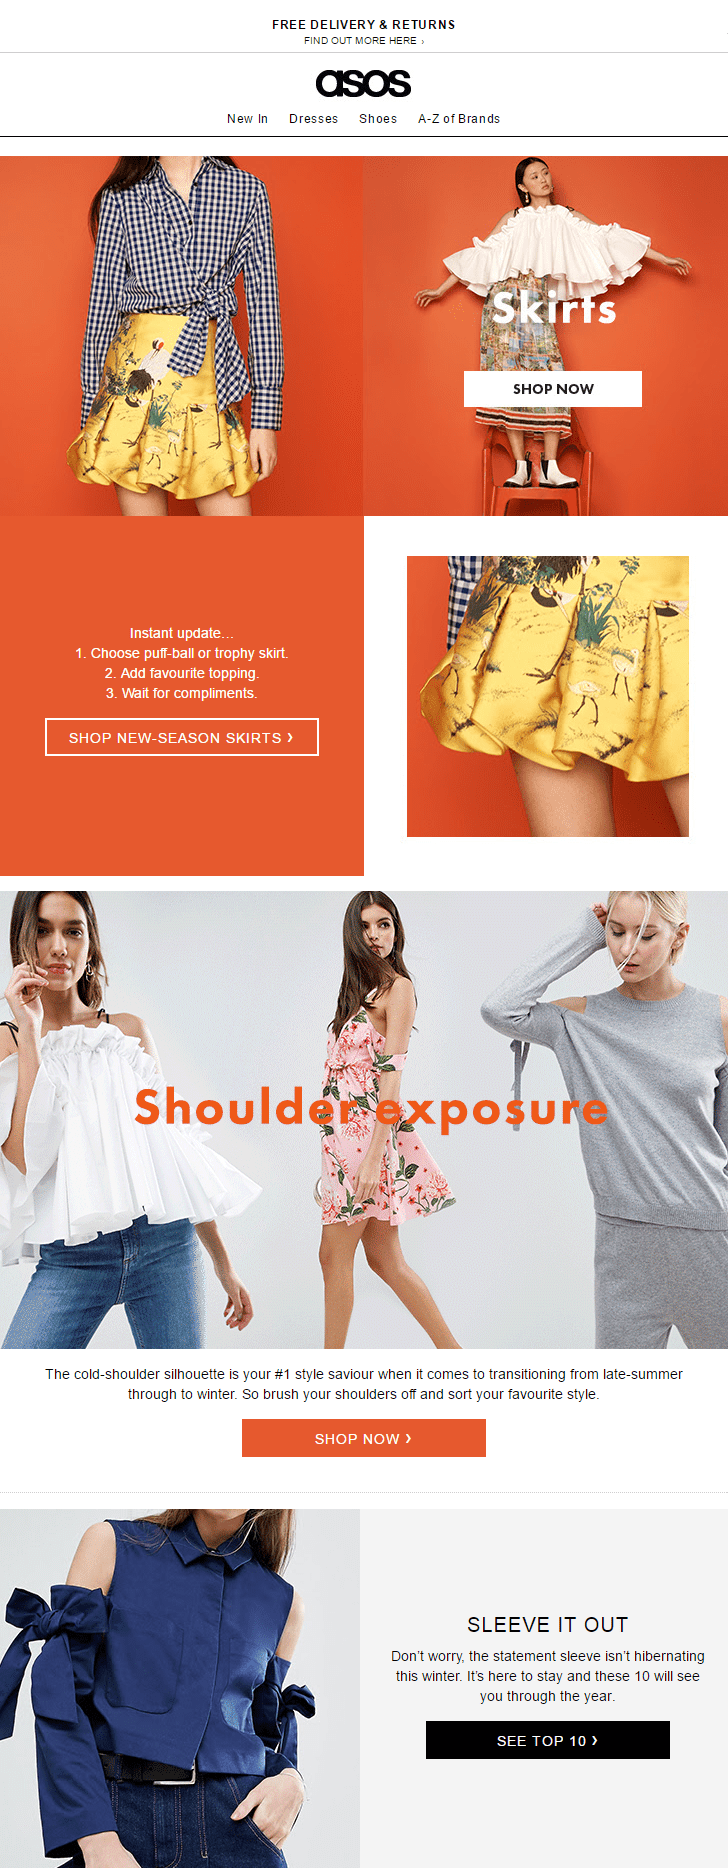 asos fashion new season skirts tops trends email newsletter